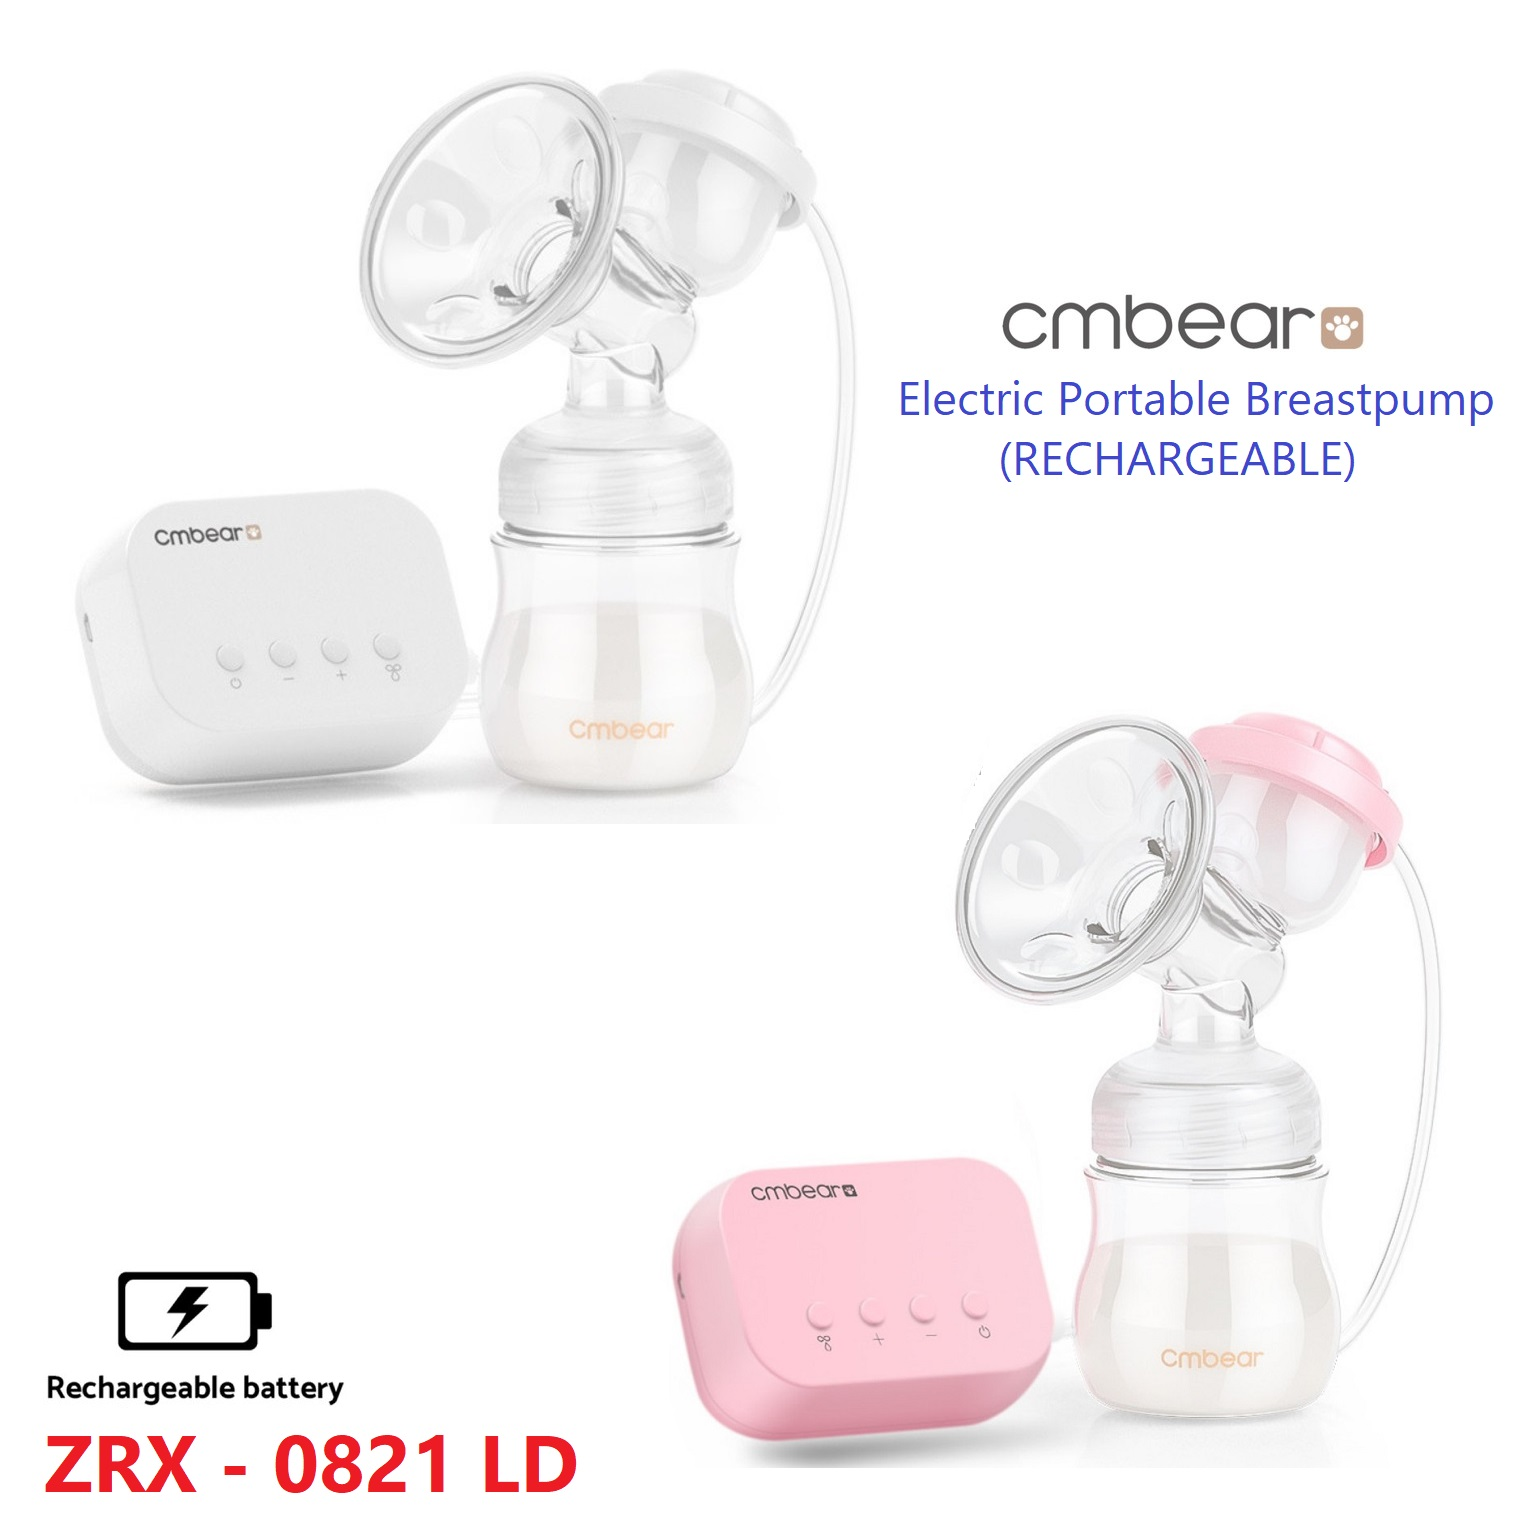 CMBear Electric Rechargeable Breastpump ZRX-0821LD